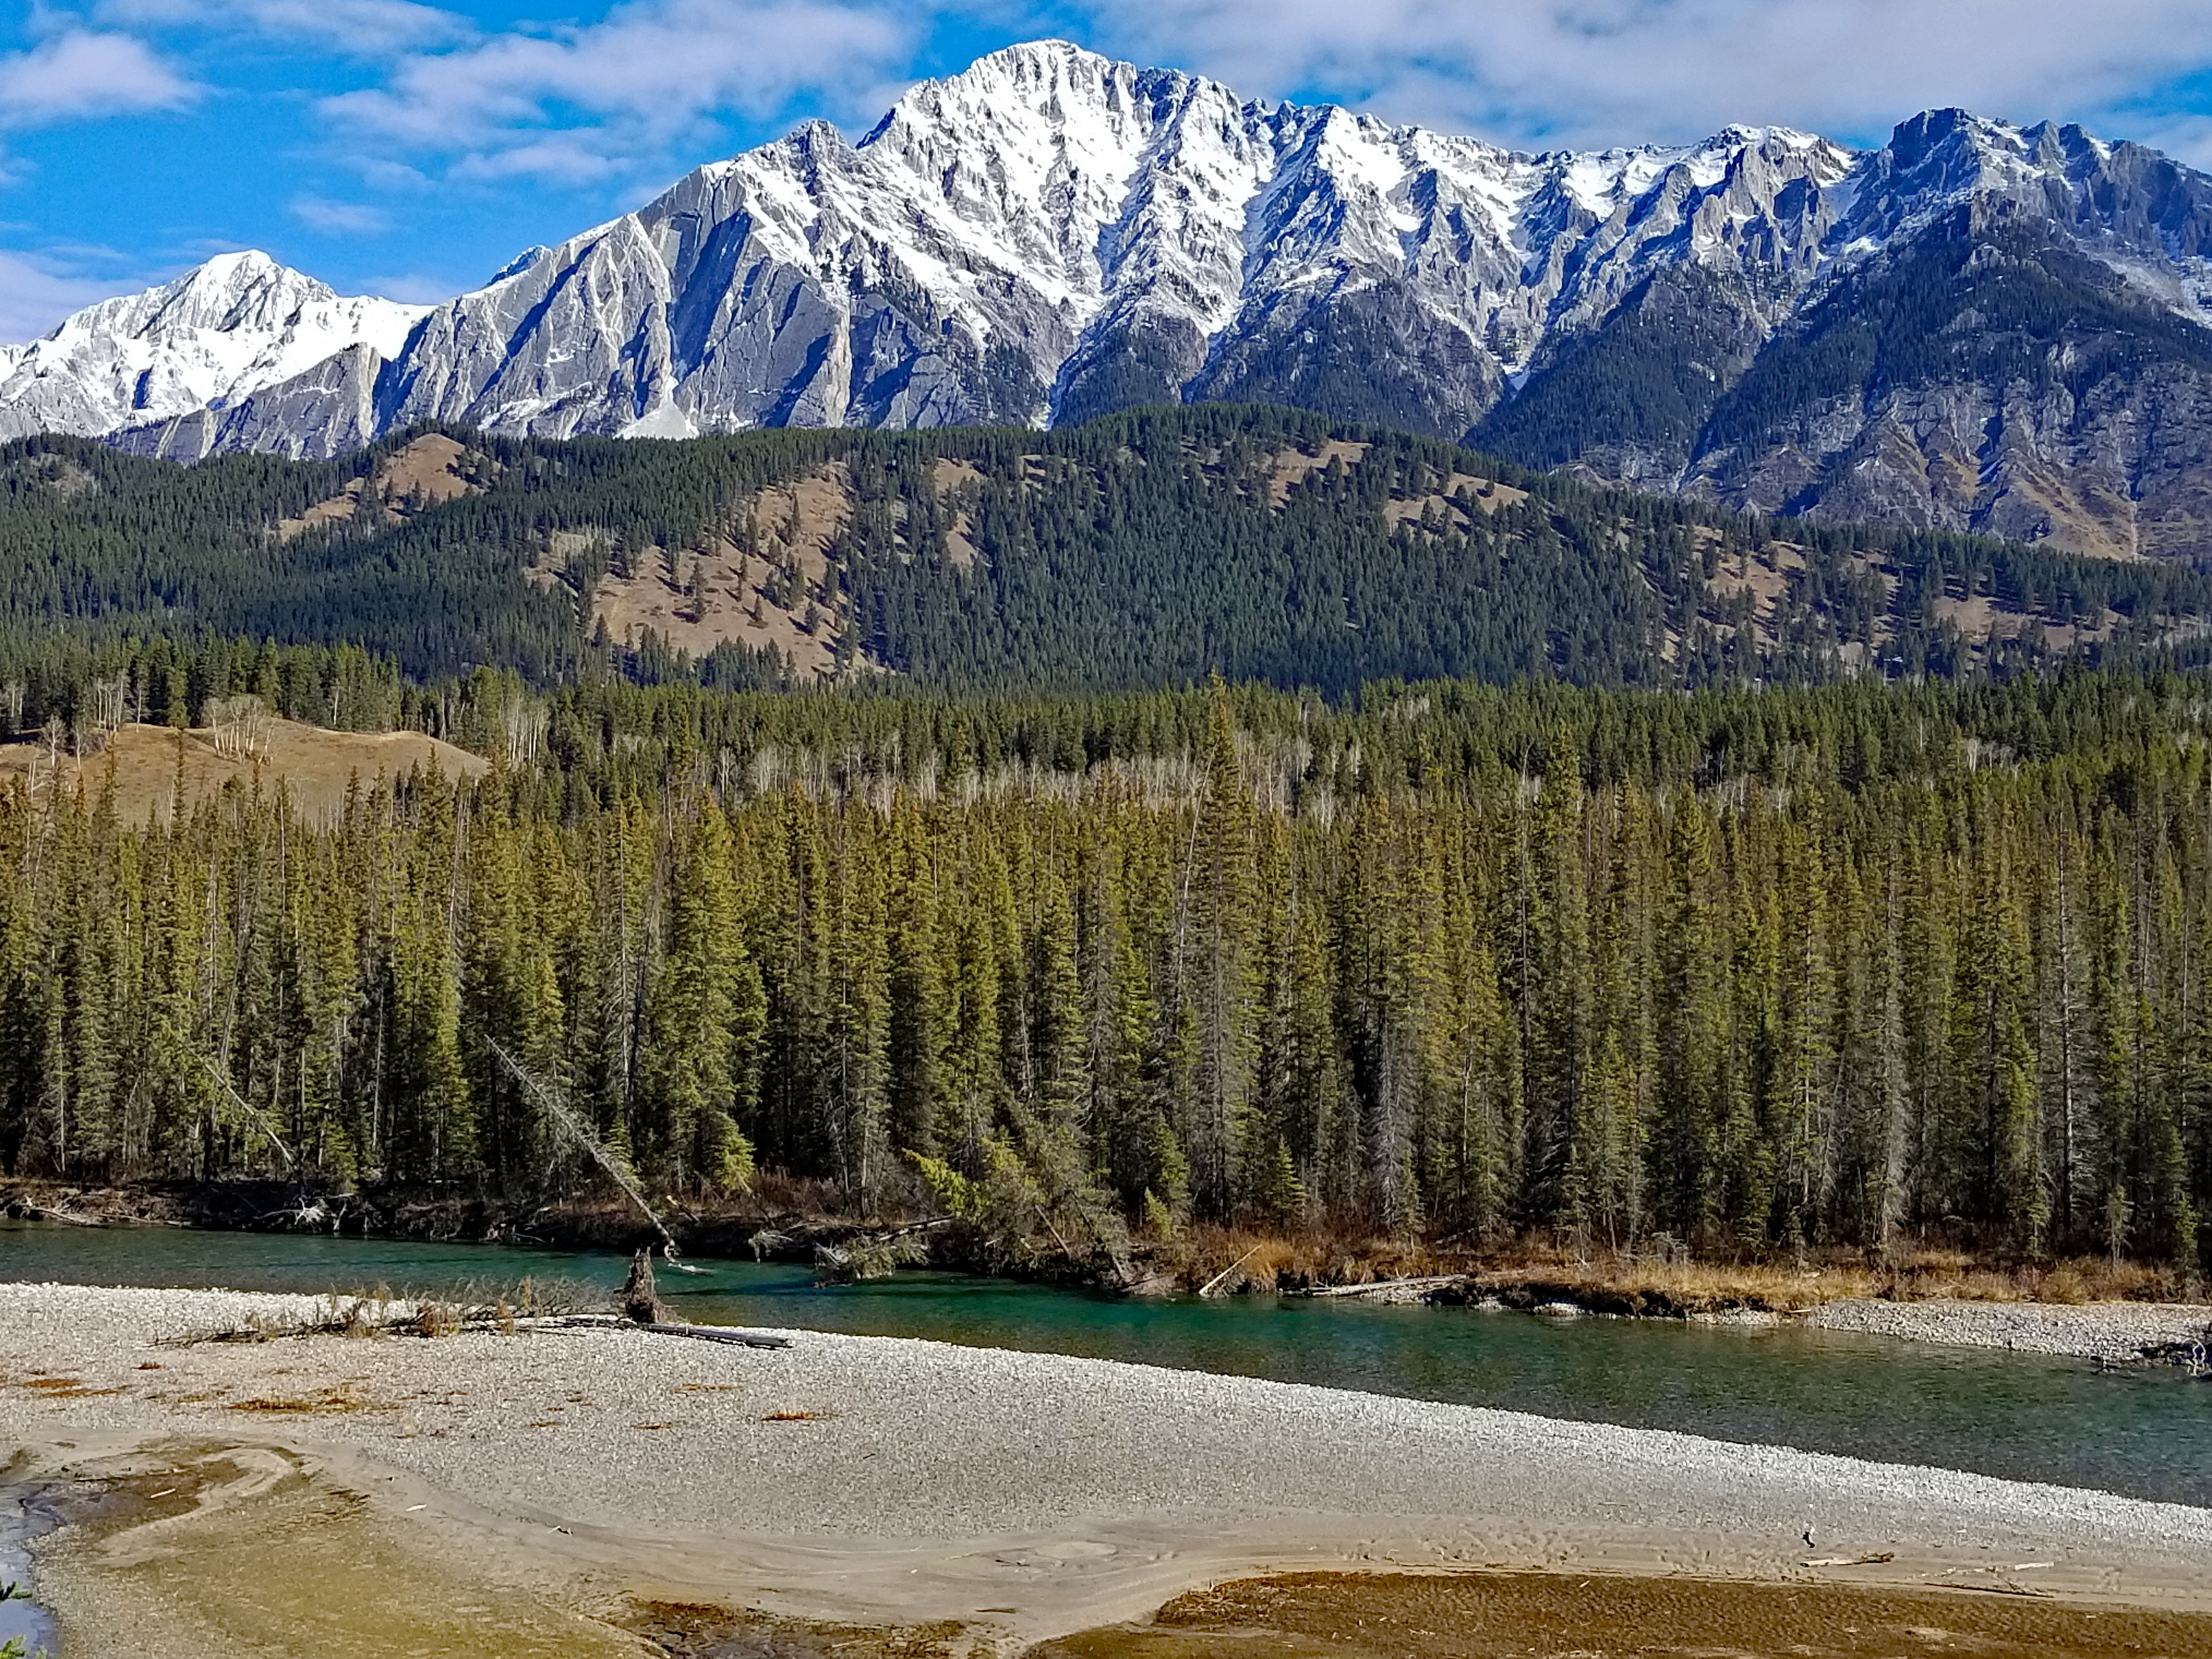 "<p>Banff National Park, AB</p><p class=""lightbox-share""><span>Share: </span><a class=""lightbox-fb"" href=""javascript:void(0);"">Facebook</a><a class=""lightbox-twit"" href=""https://twitter.com/home?status=I%20voted%20for%20Mount%20Ishbel%20in%20the%20Cornice%20Calendar%20Contest.%20Choose%20your%20favourite%206%20photos:%20http://ow.ly/yCSmZ"" target=""_blank"">Twitter</a></p><input type=hidden class=voteid value=1908 />"